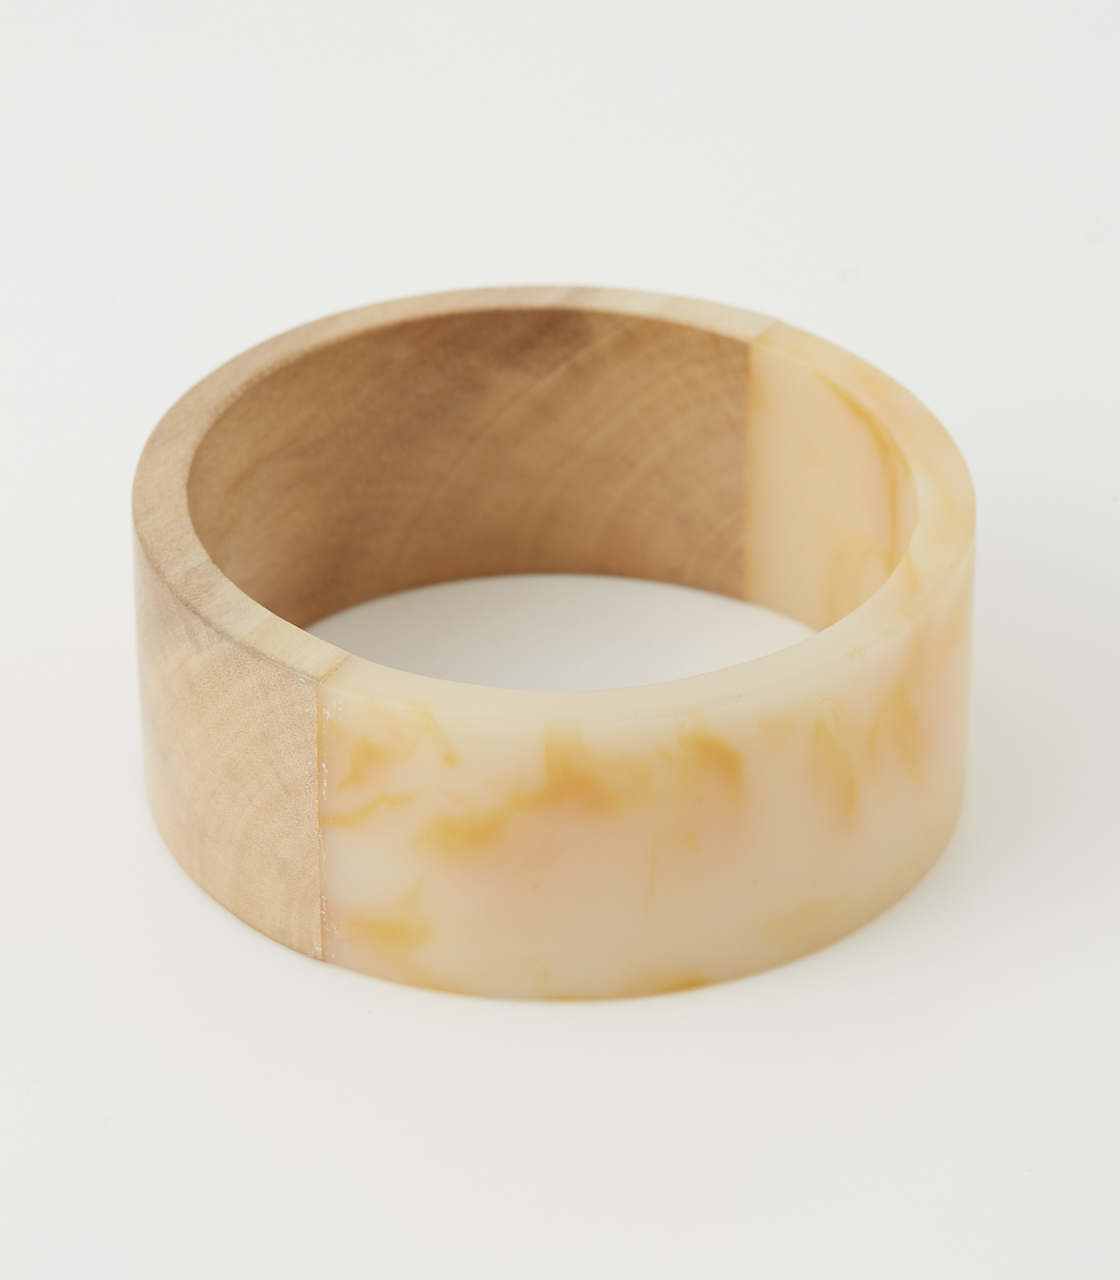 WOOD BLOCKING BANGLE 詳細画像 柄WHT 1